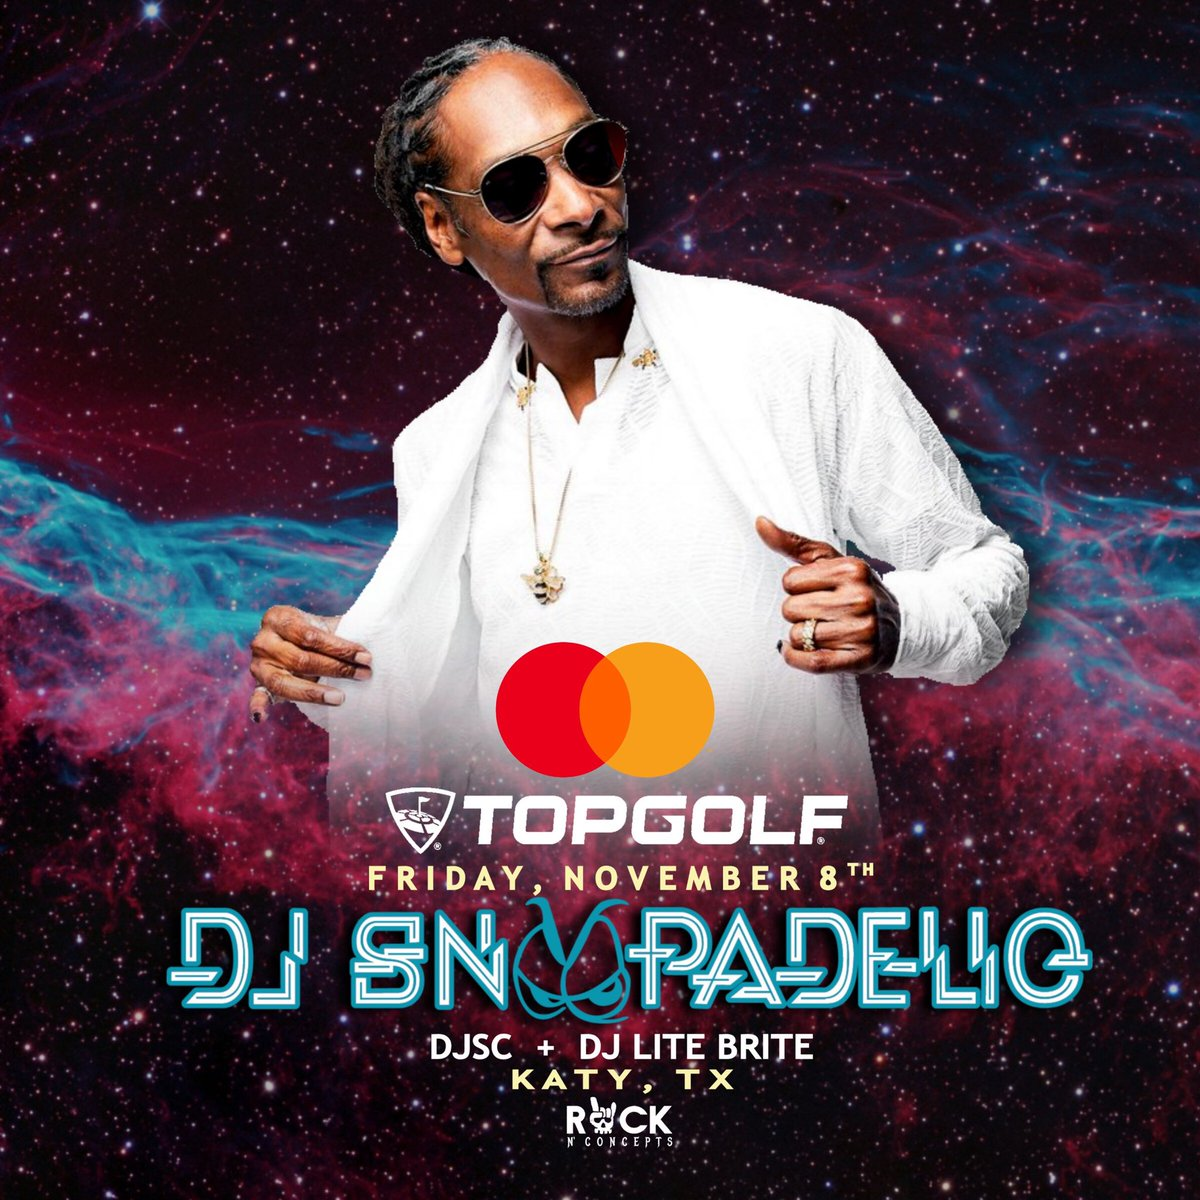 Who wants to see DJ Snoopadelic perform live on the field at Topgolf Houston-Katy on 11/8/19? If you have a @Mastercard, get your first-access ticket today before sales open up to everyone else. Ts&Cs apply. #HoustonTX Full details: bit.ly/2kO81MZ